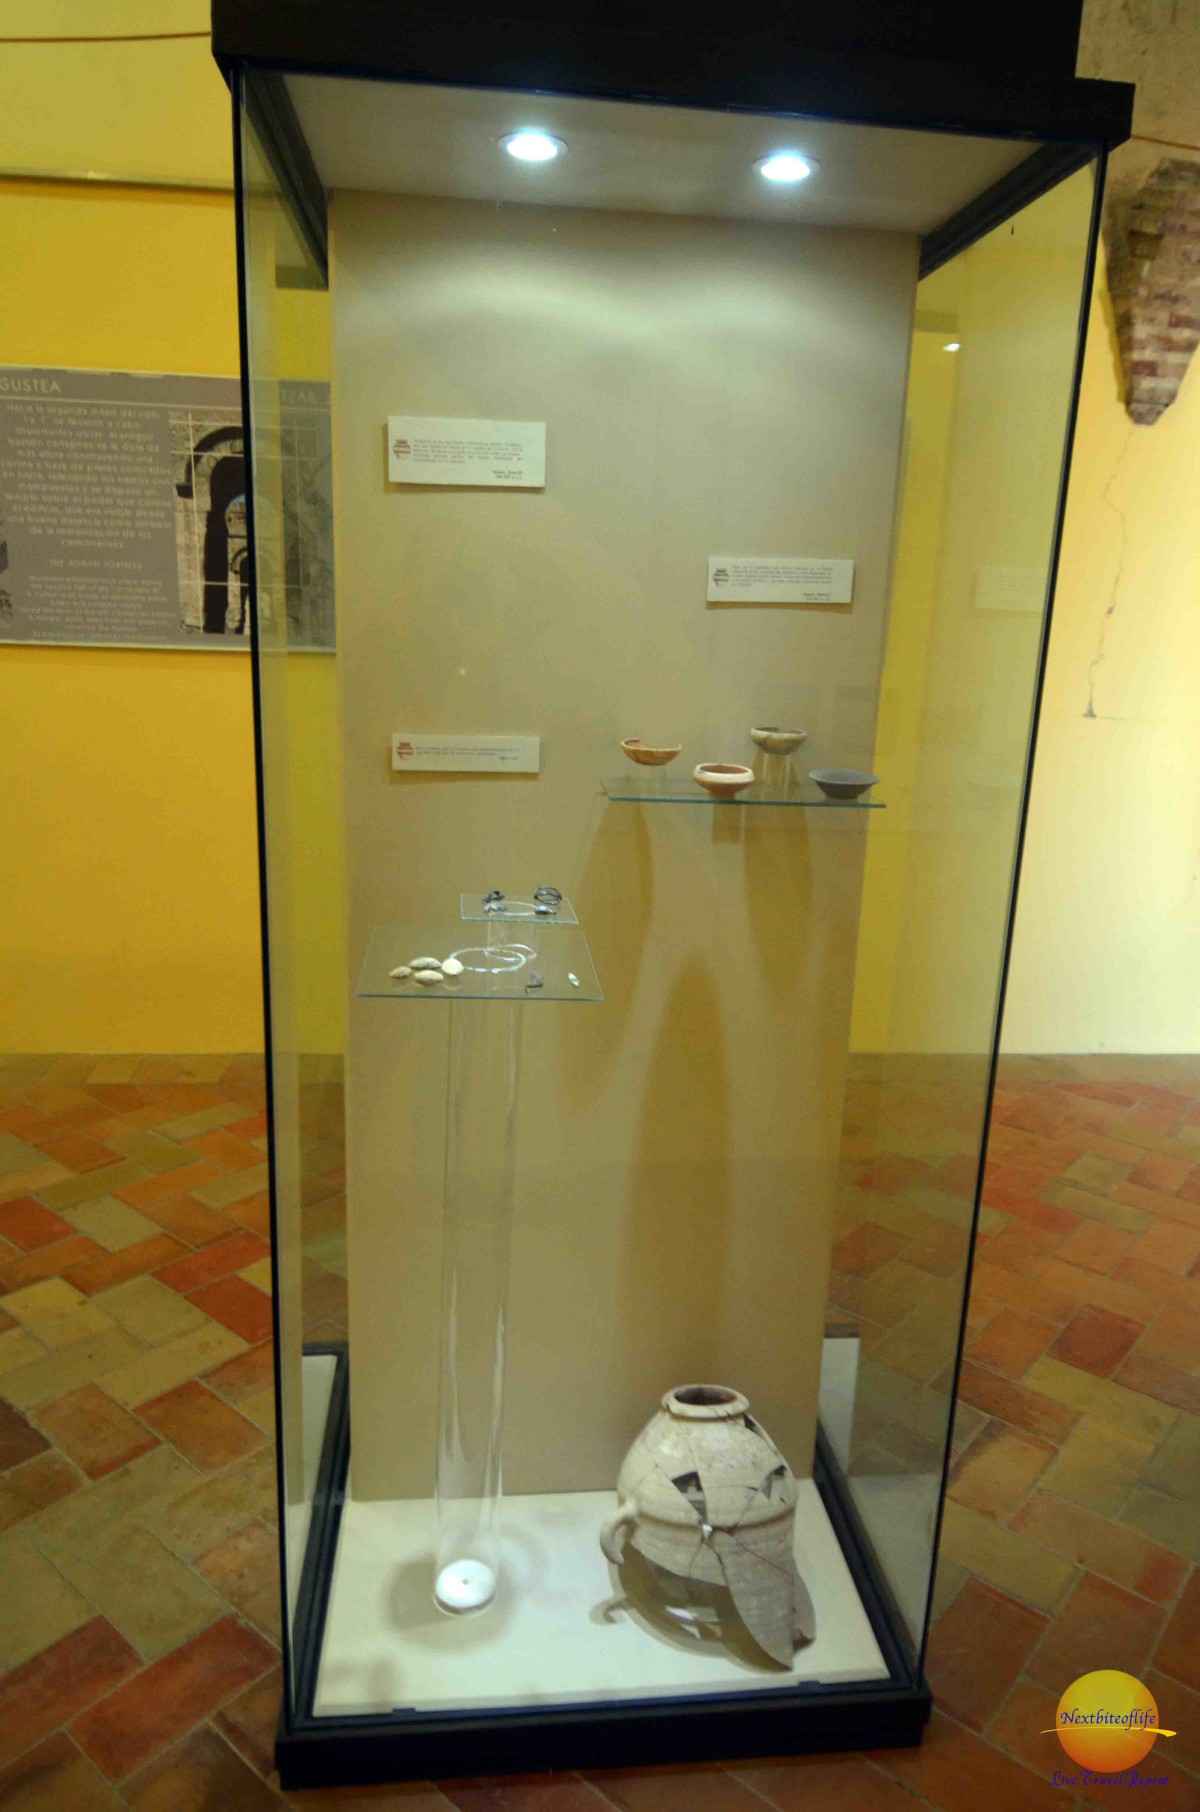 Some of the artifacts displayed in the Upper Prisoners Hall at carmona fortress.